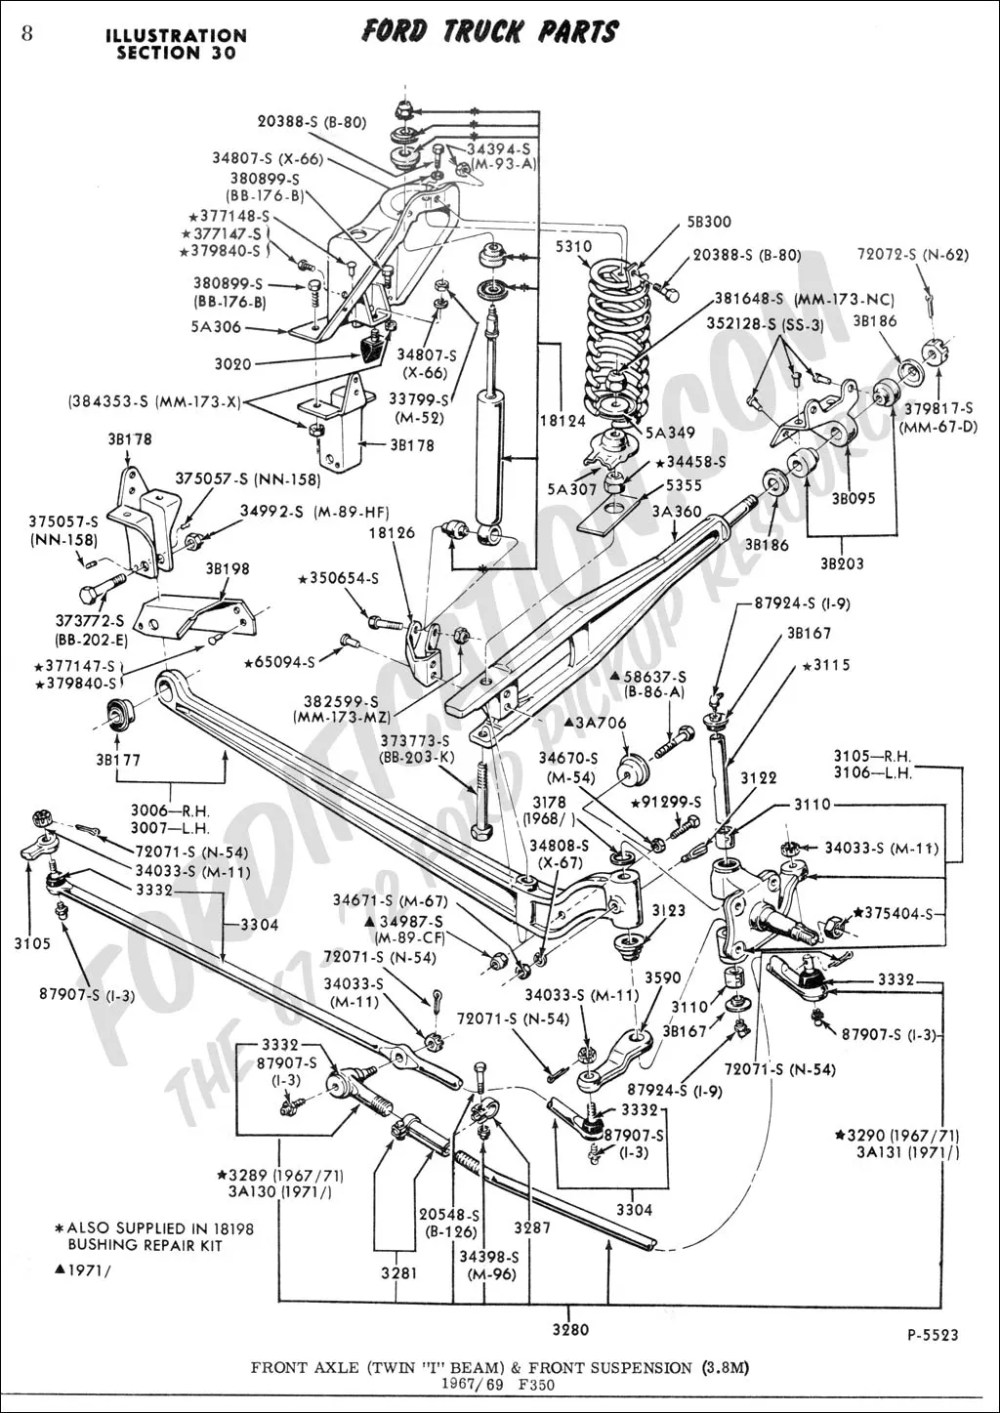 medium resolution of wiring diagram as well as ford f 350 super duty steering parts 1999 f350 steering diagram